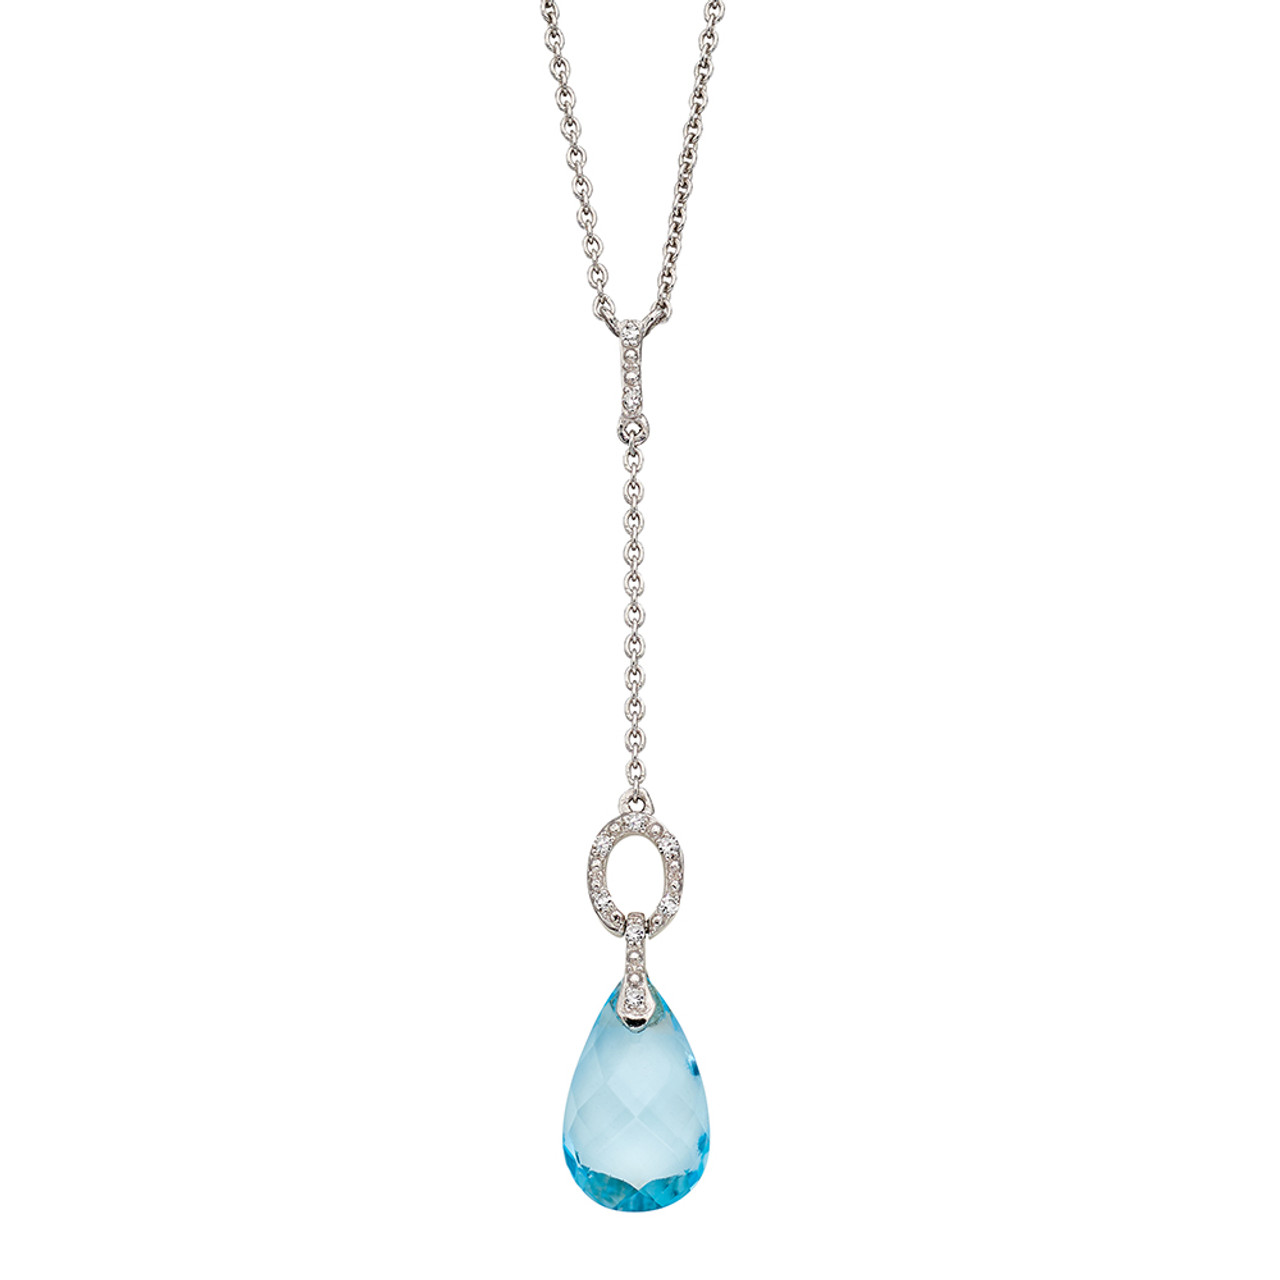 9ct White Gold Briolette Blue Topaz & Diamond Necklace